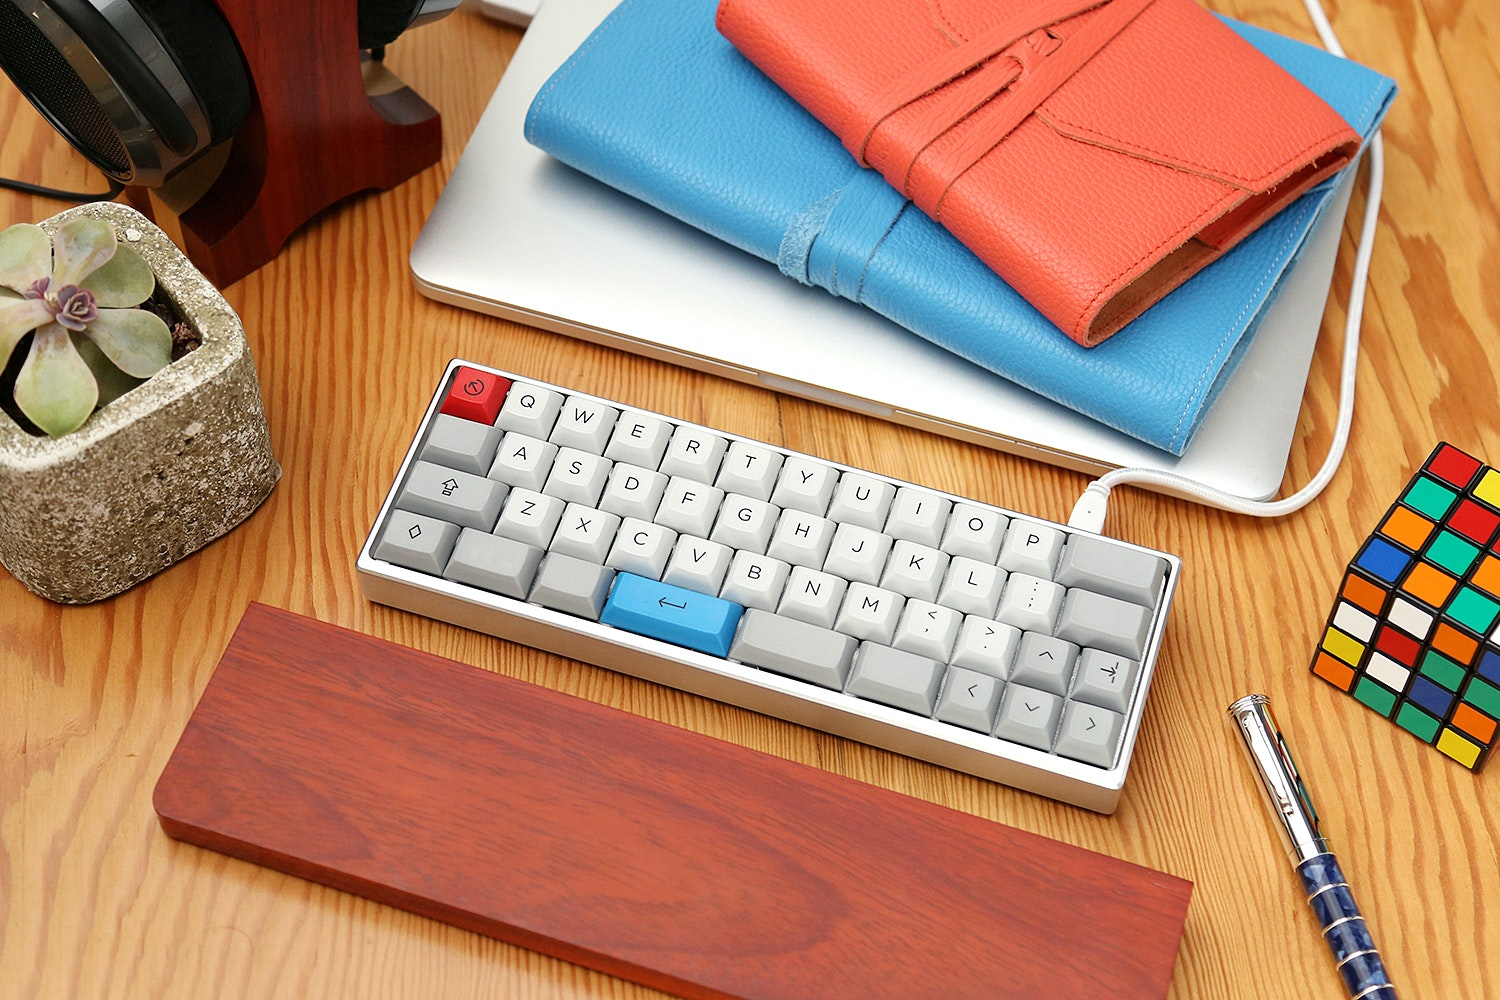 The MiniVan Custom Mechanical Keyboard Kit